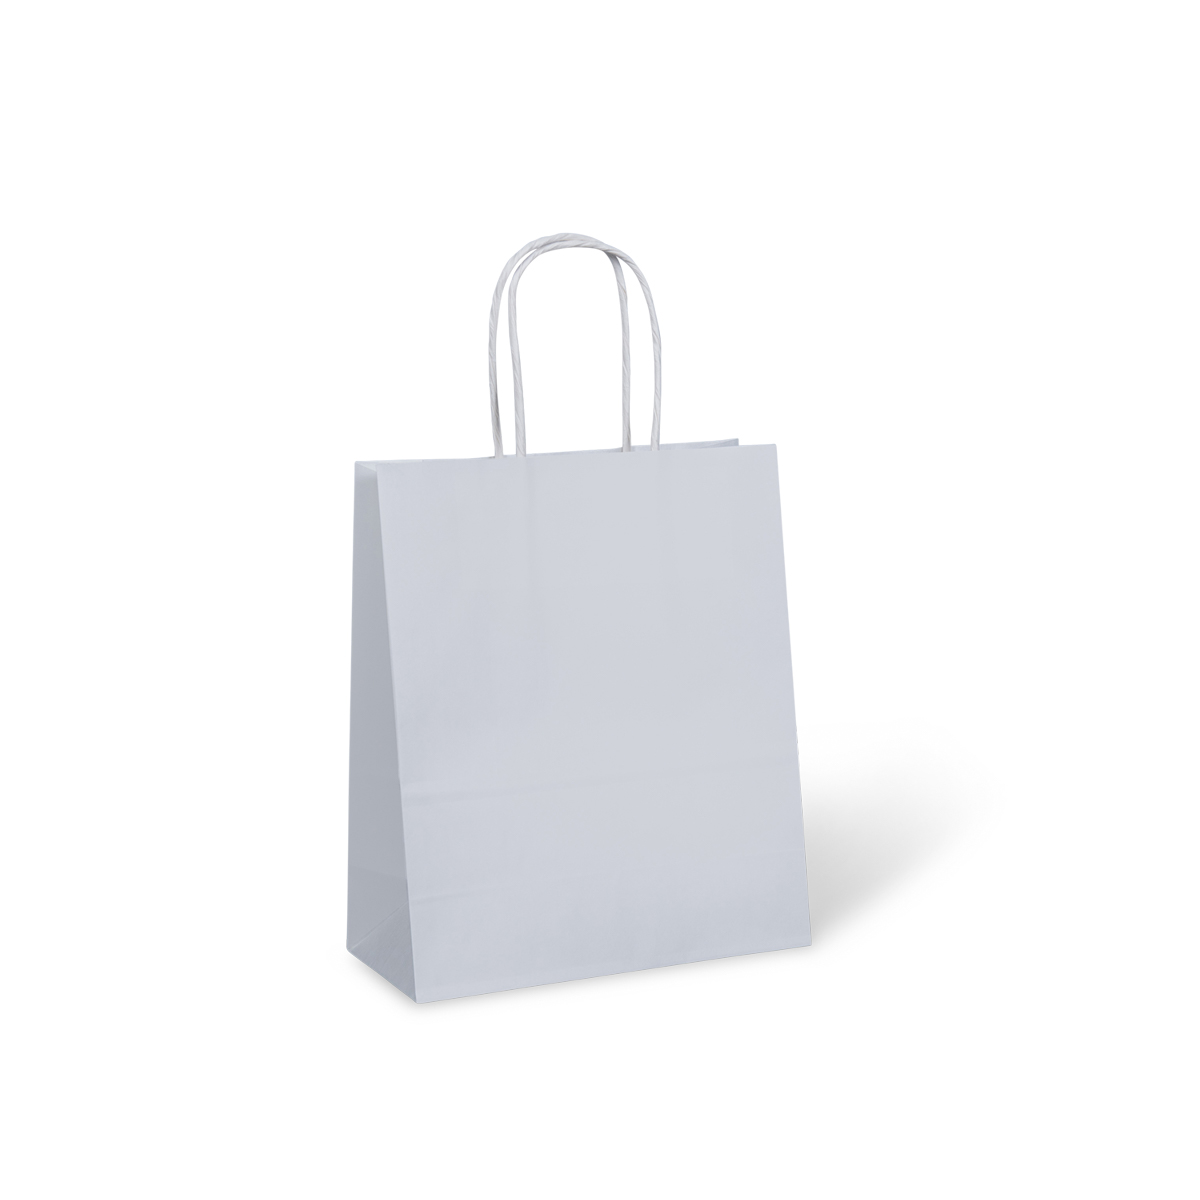 8 Extra Small Petite Paper Twist Handle Bag White 210mm X